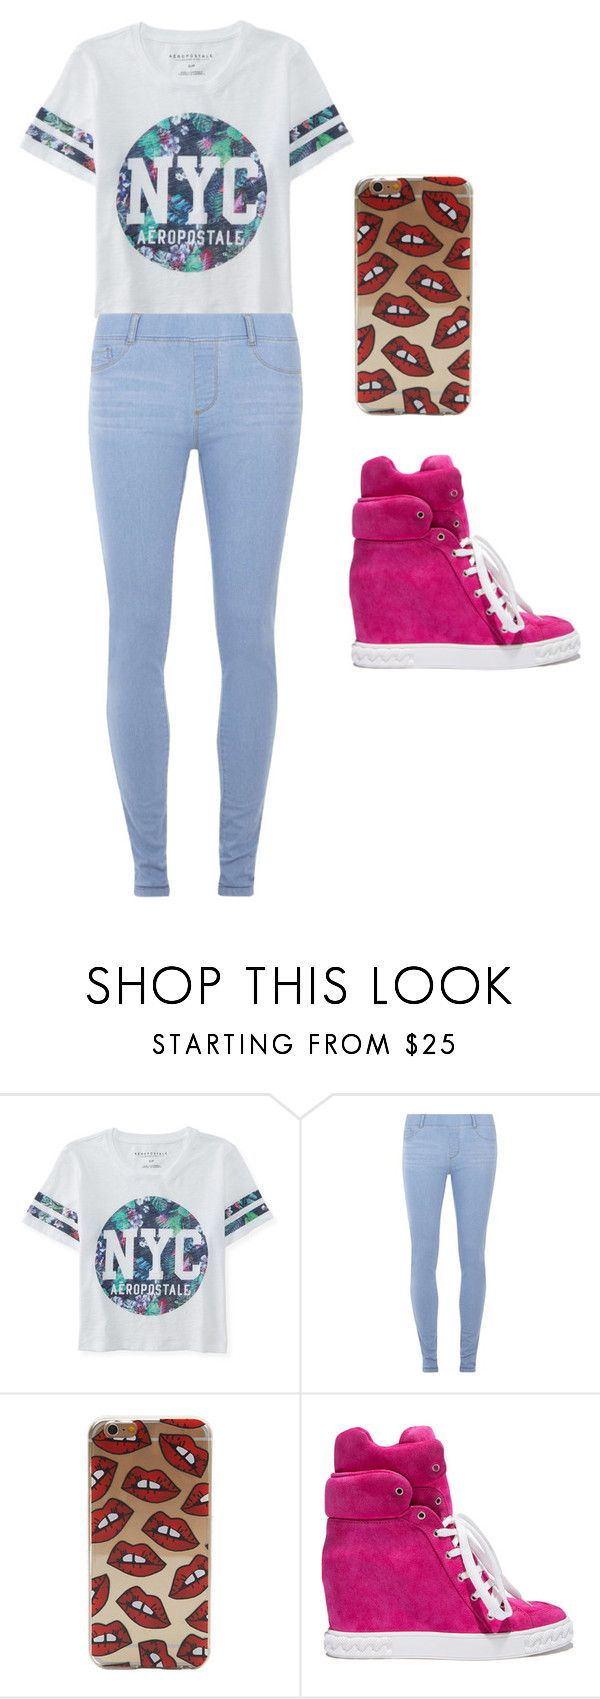 """look de secundaria 3.0"" by agosgalian on Polyvore featuring moda, Aéropostale, Dorothy Perkins, Casadei, women's clothing, women, female, woman, misses y juniors"